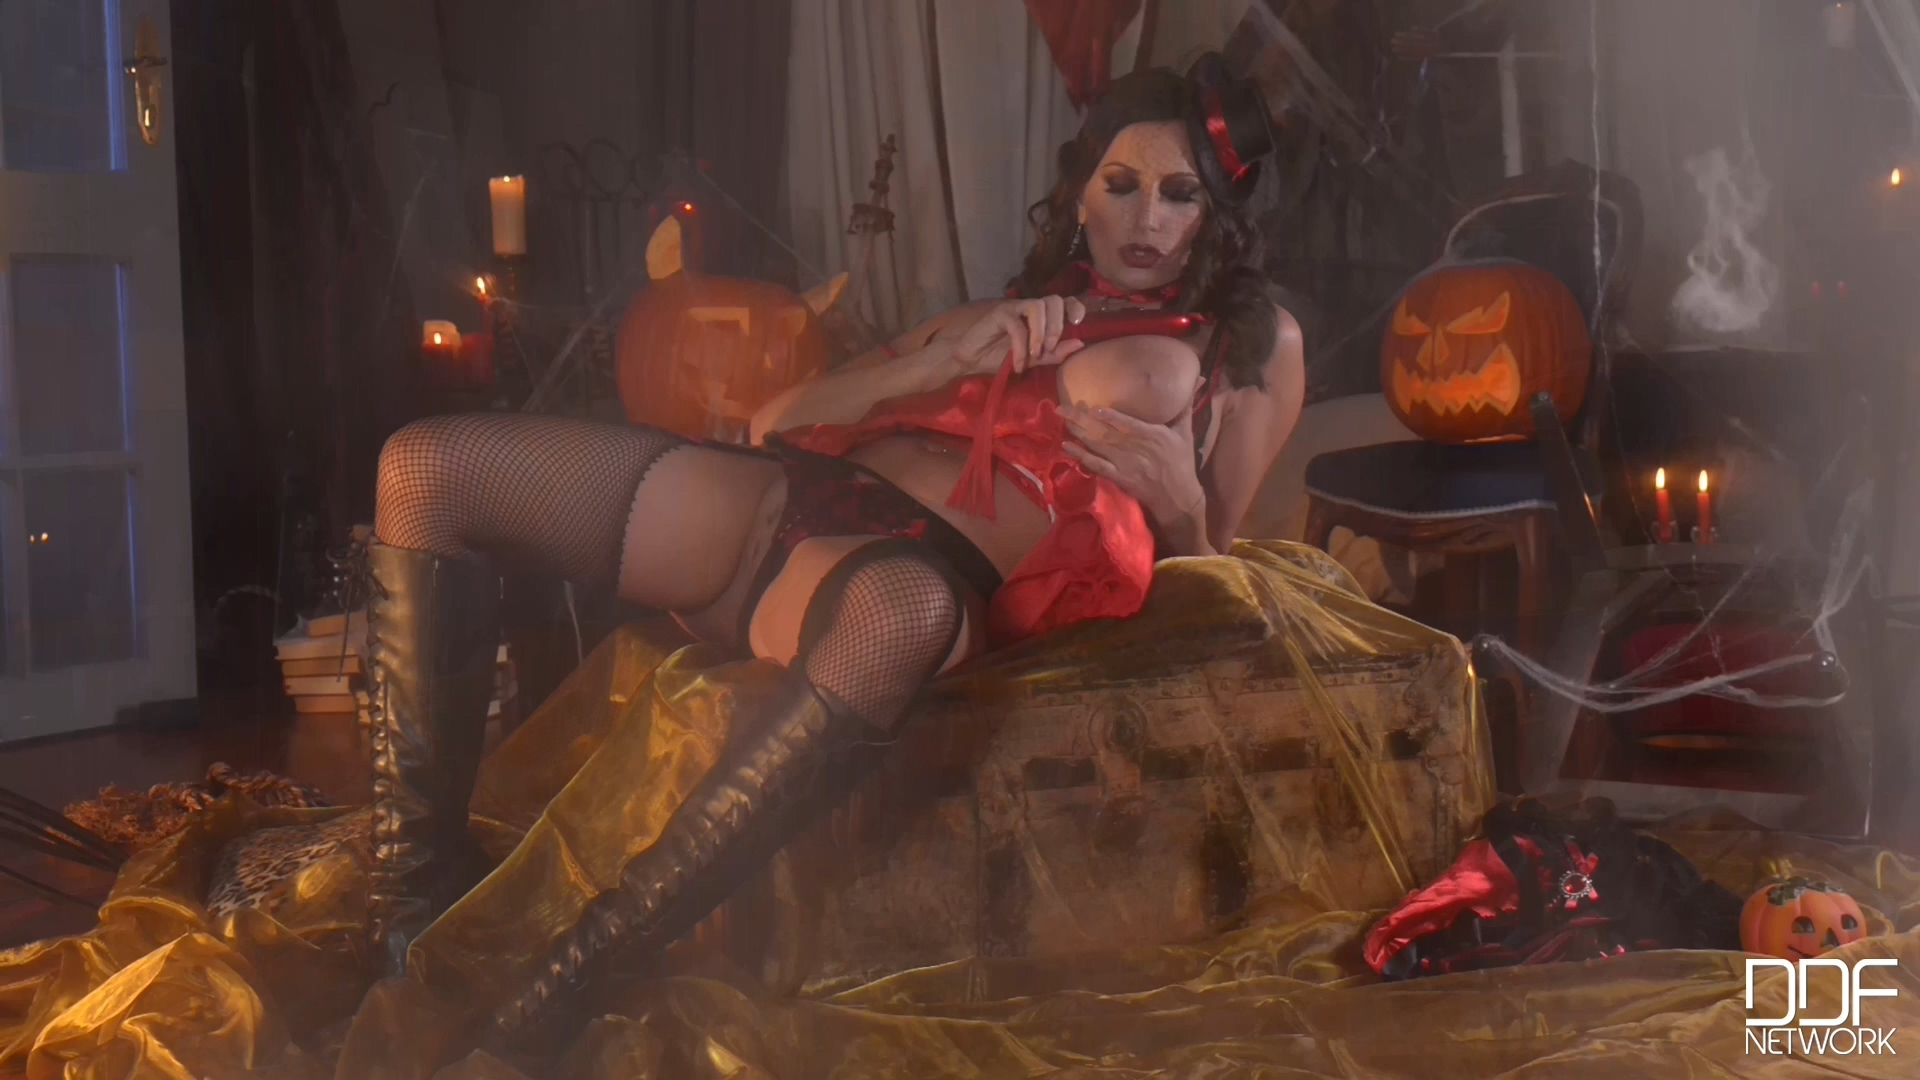 DDFBusty - 2014 Her Tricky Treat [solo] 1080p.mp4_20201217_221420.026.jpg